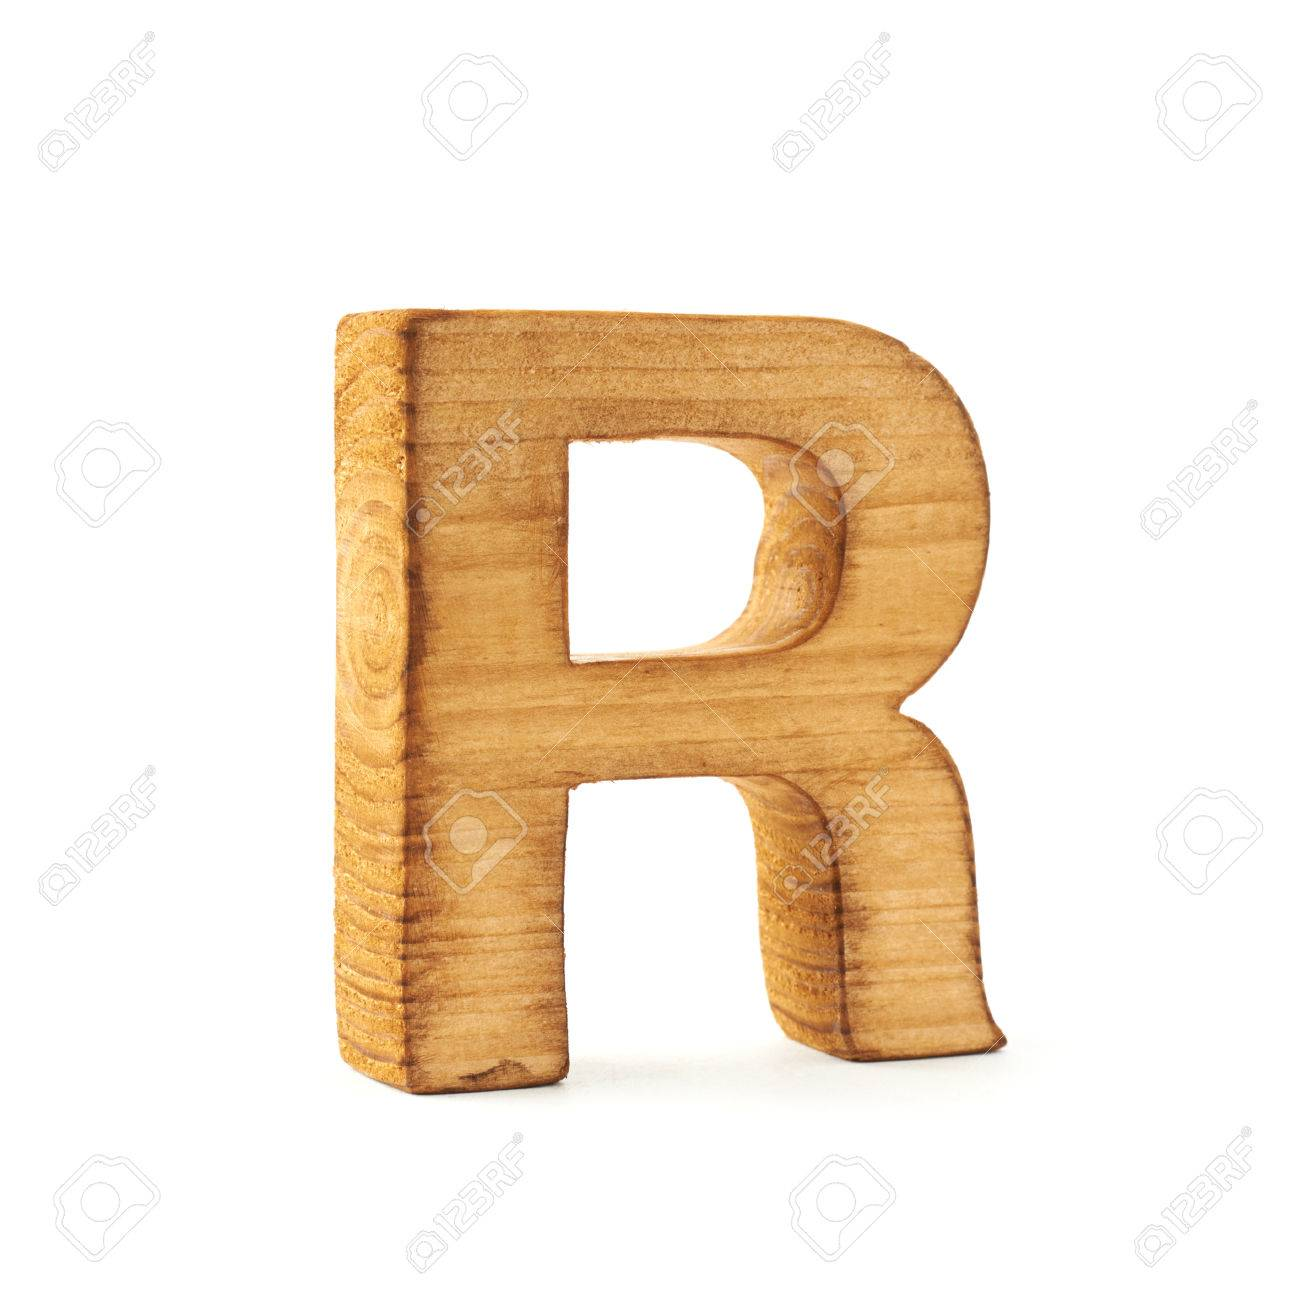 Single Capital Block Wooden Letter R Isolated Over The White